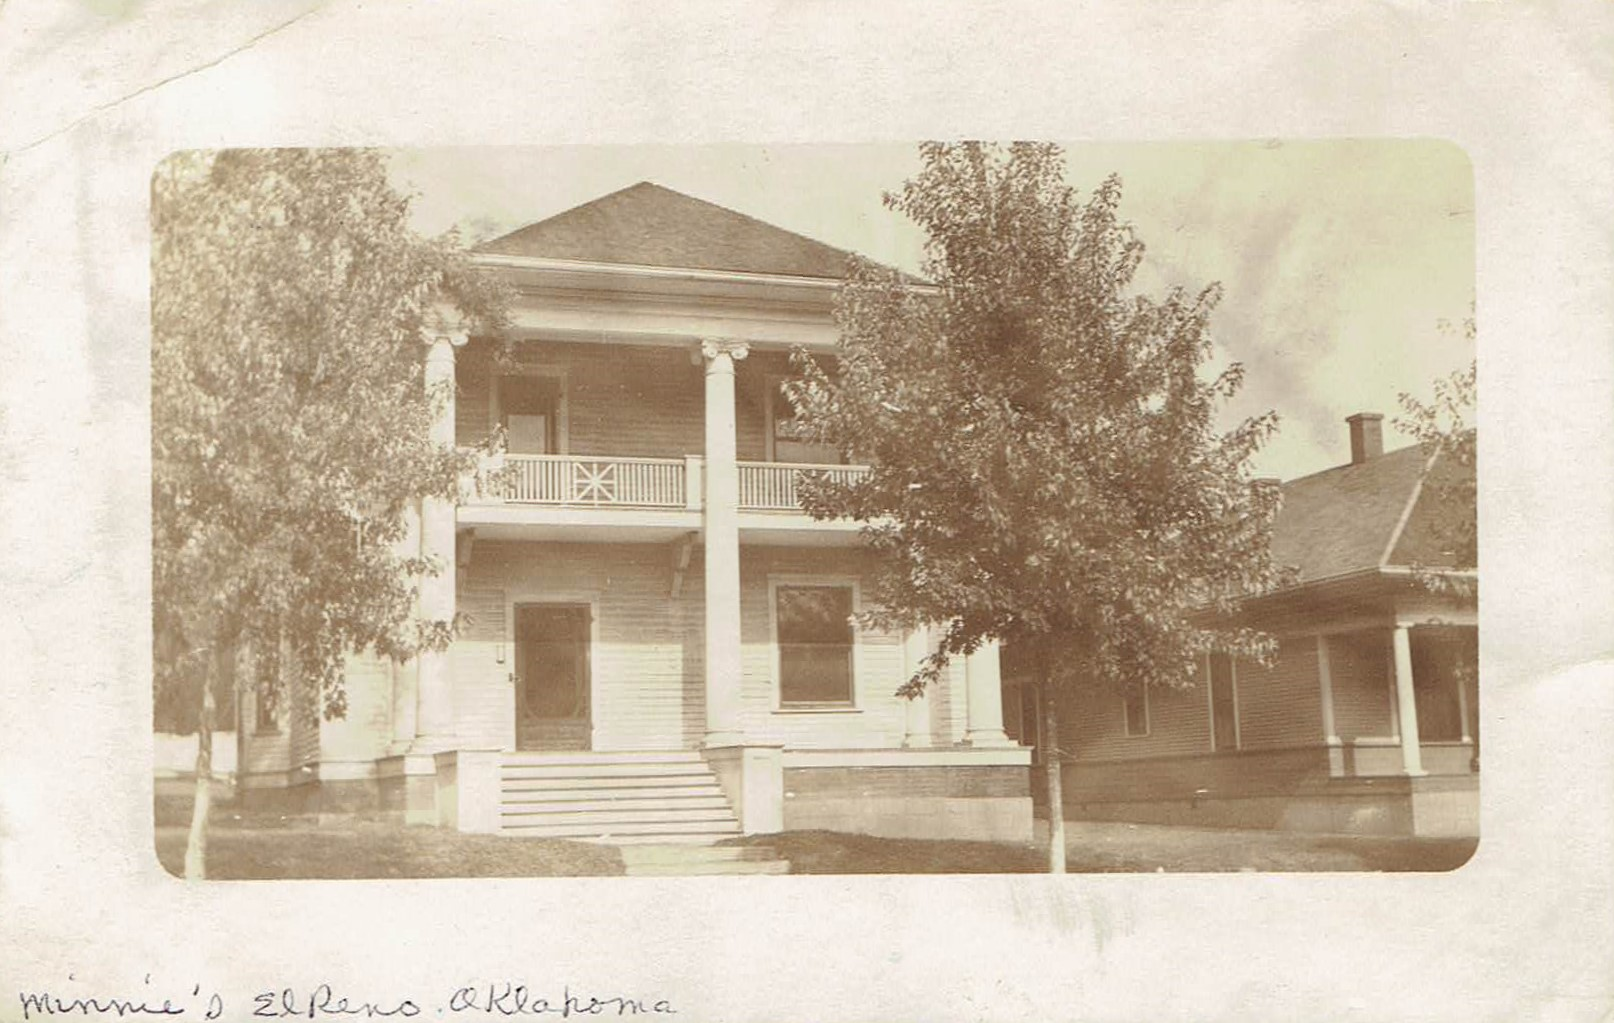 315 E Wade Street postcard 1913 Tommy Neathery Collection